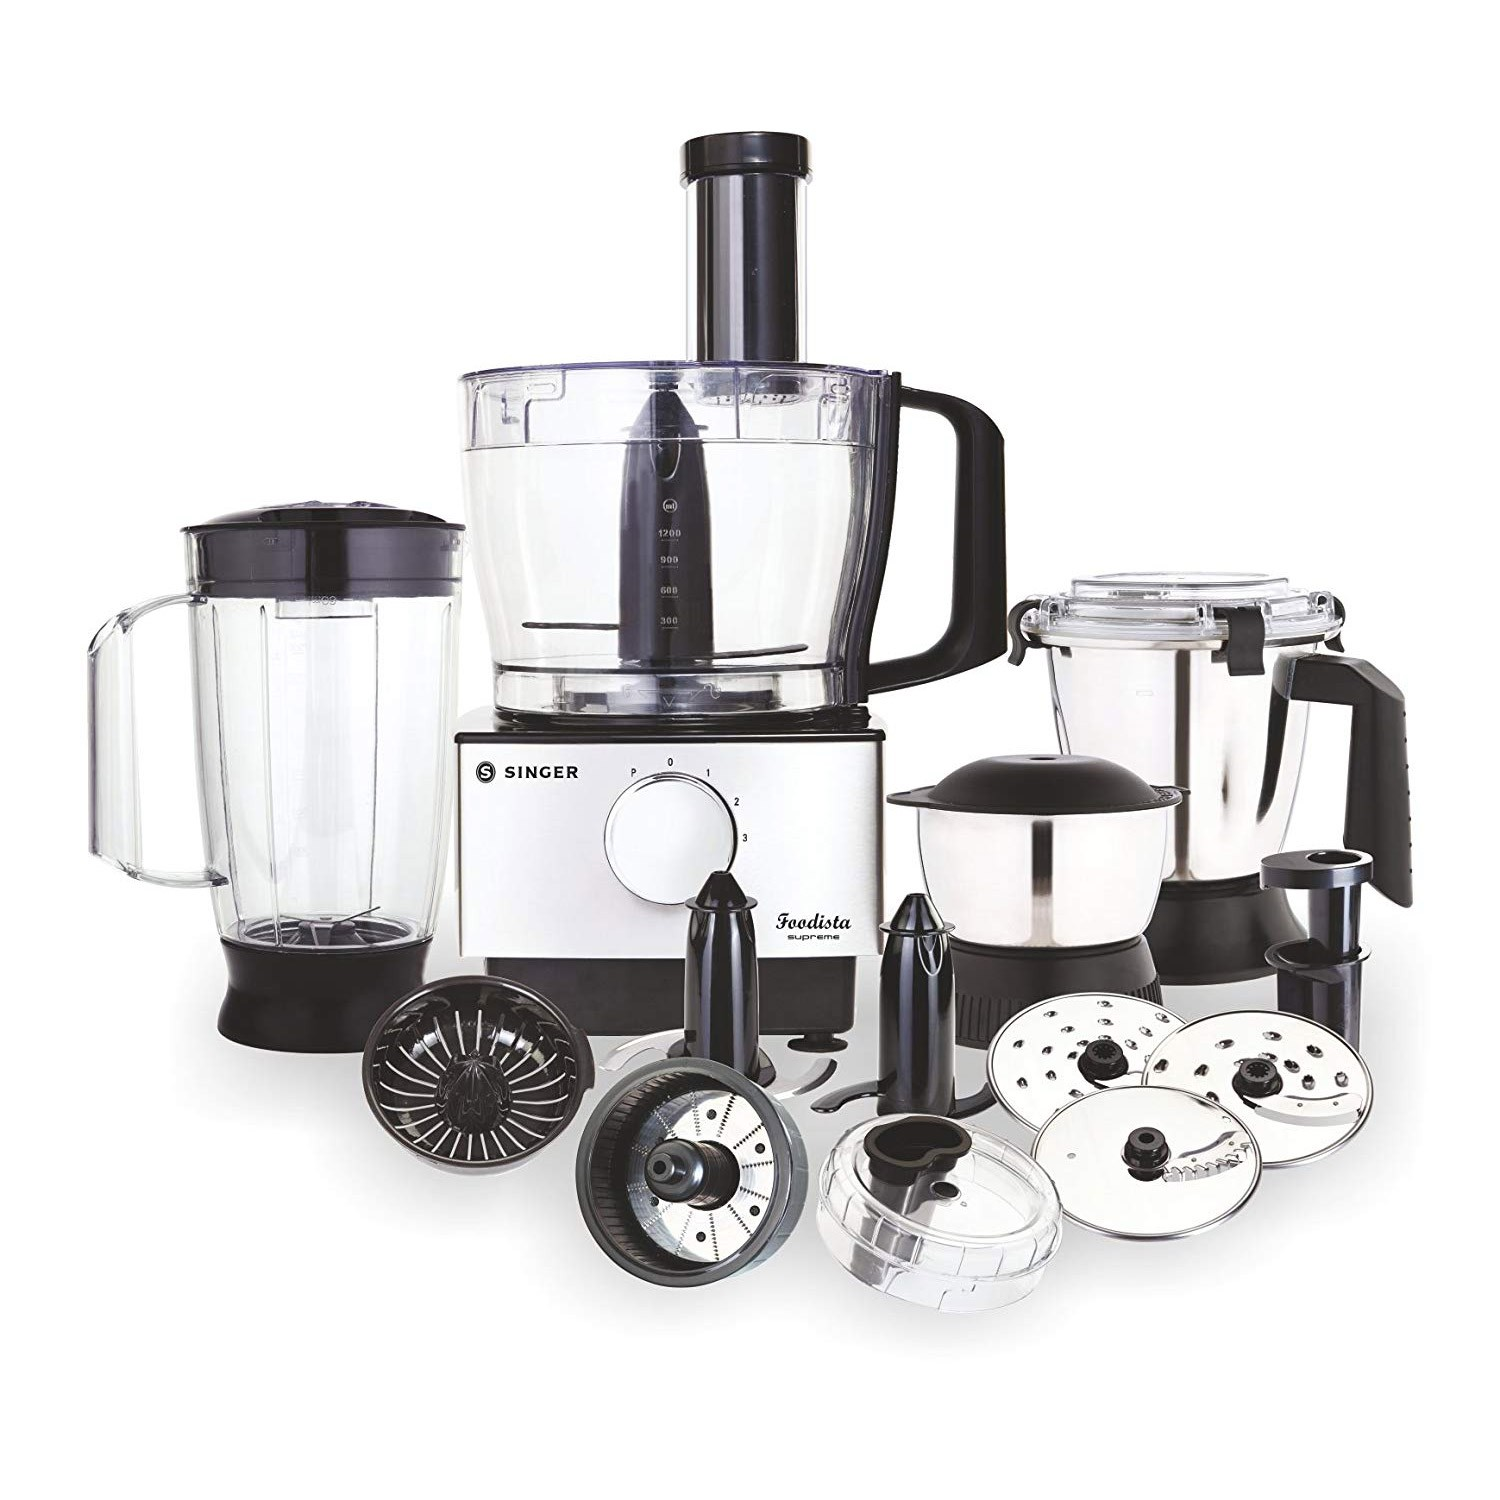 Foodista Supreme 1000 watts Food Processor